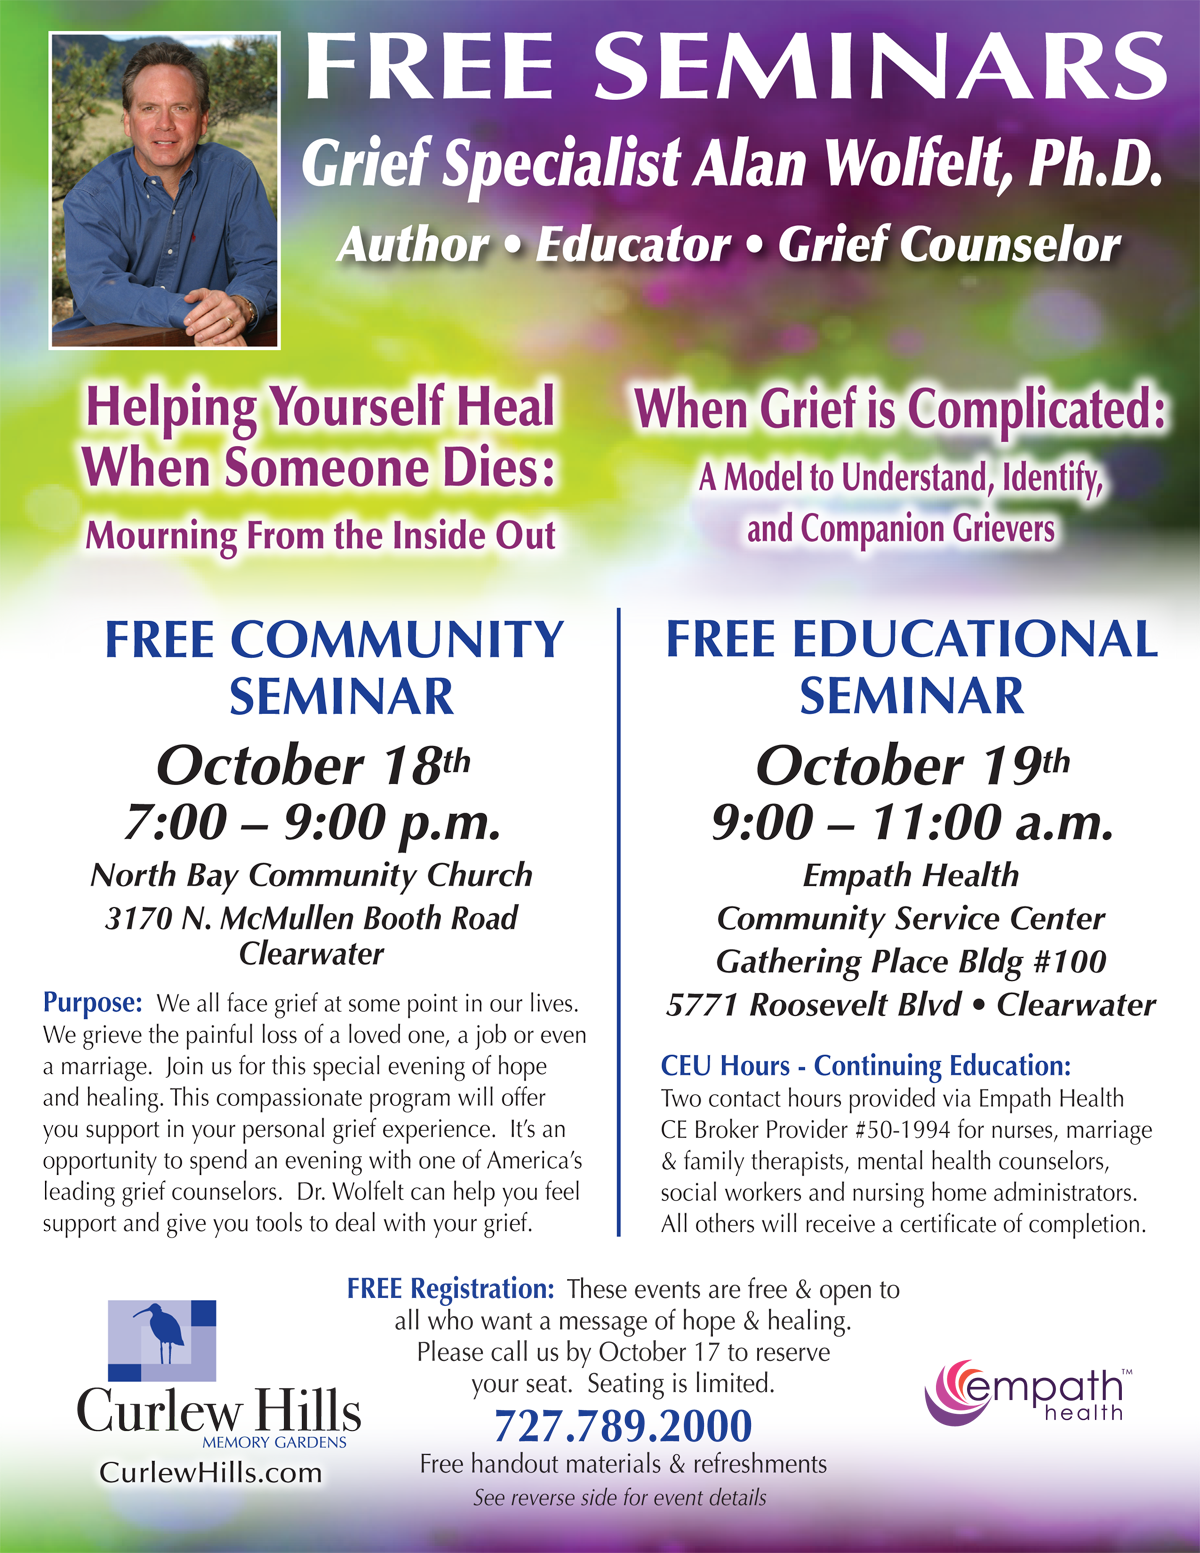 When Grief is Complicated: A Model to Understand, Identify, and Companion Grievers @ Suncoast Hospice | Empath Health Service Center, Gathering Place | Clearwater | Florida | United States